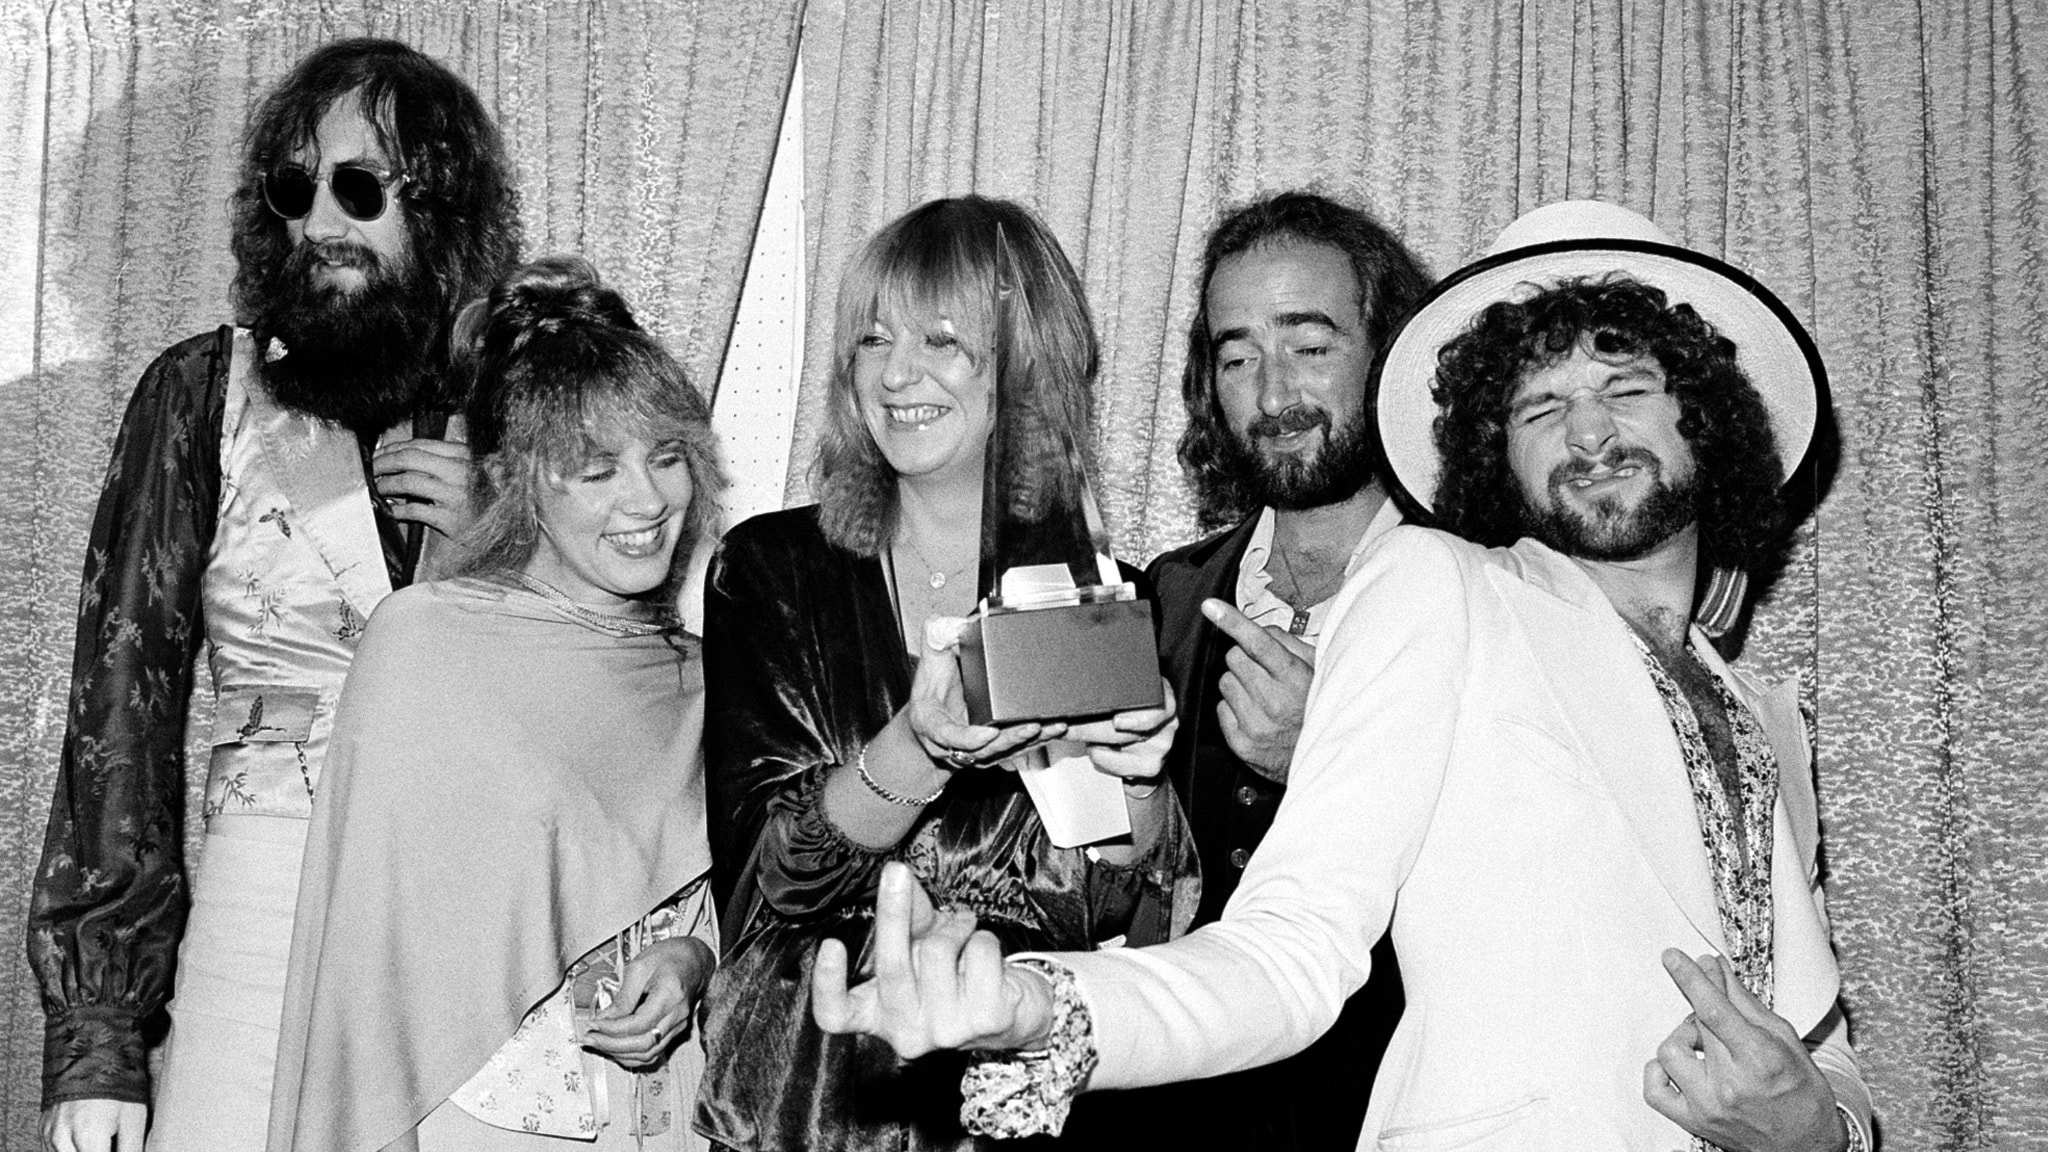 """Members of the singing group Fleetwood Mac pose with their award at the American Music Awards show in Santa Monica, Ca., Jan. 16, 1978.  The group was named favorite pop group and """"Rumours"""" was named favorite album in the pop category.  Posing from left are, Mick Fleetwood, wearing sunglasses; Stevie Nicks; Christine McVie; John McVie; and Lindsey Buckingham."""